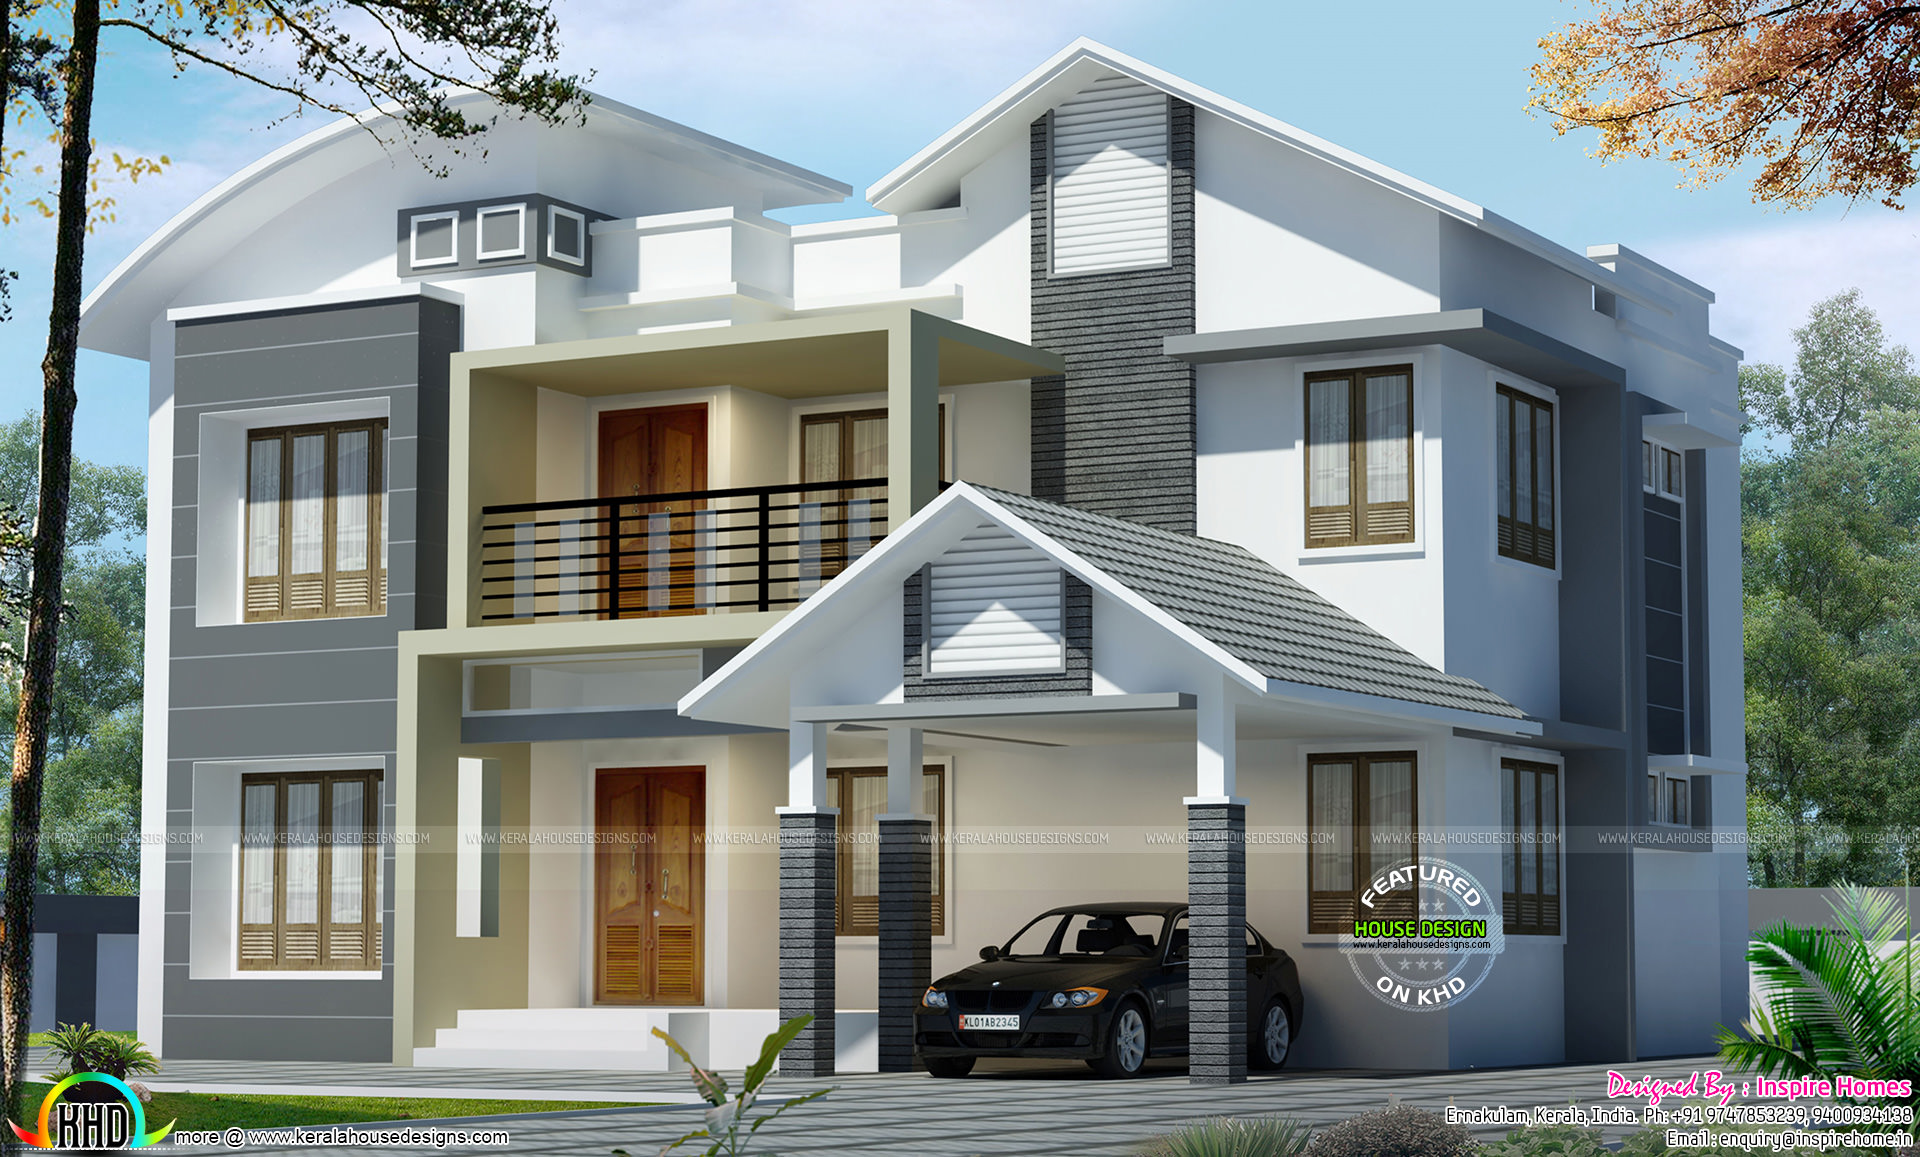 Roof Floor Elevation : Curved roof mix modern house kerala home design and